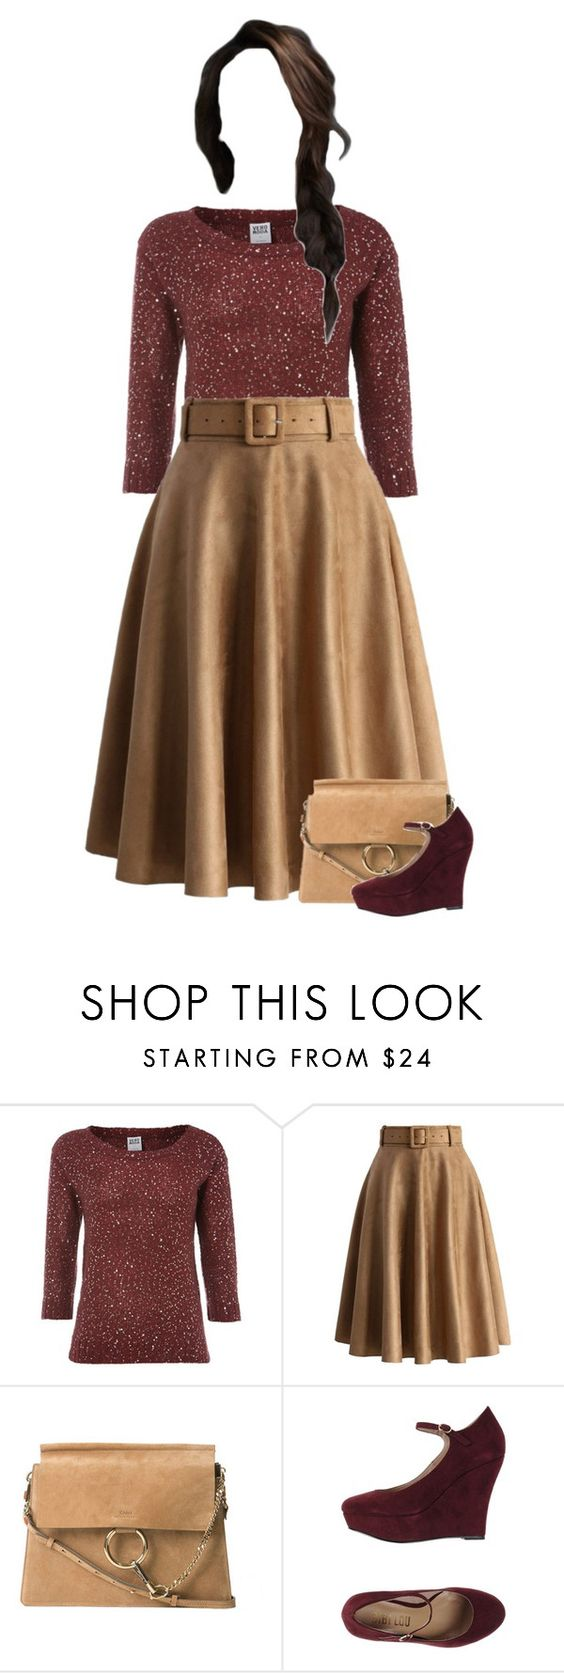 """""""Sunday Night Service (Autumn Edition)"""" by kateremington-1 ❤ liked on Polyvore featuring Vero Moda, Chicwish, Chloé and Bibi Lou"""